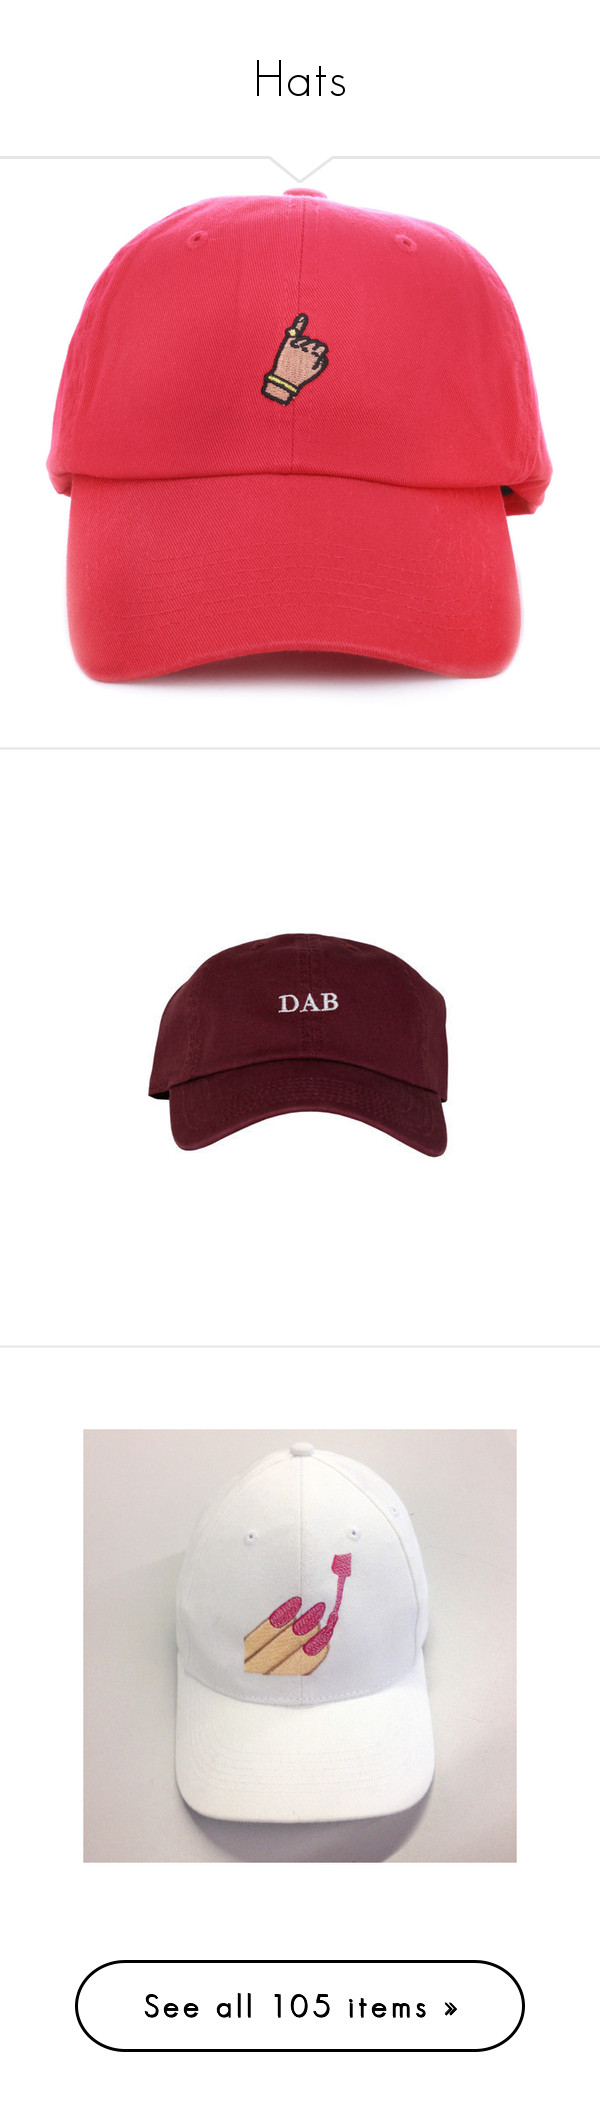 """""""Hats"""" by power-beauty ❤ liked on Polyvore featuring accessories, hats, buckle strap hats, ball cap, baseball cap hats, buckle hats, strap hats, men's fashion, men's accessories and men's hats"""